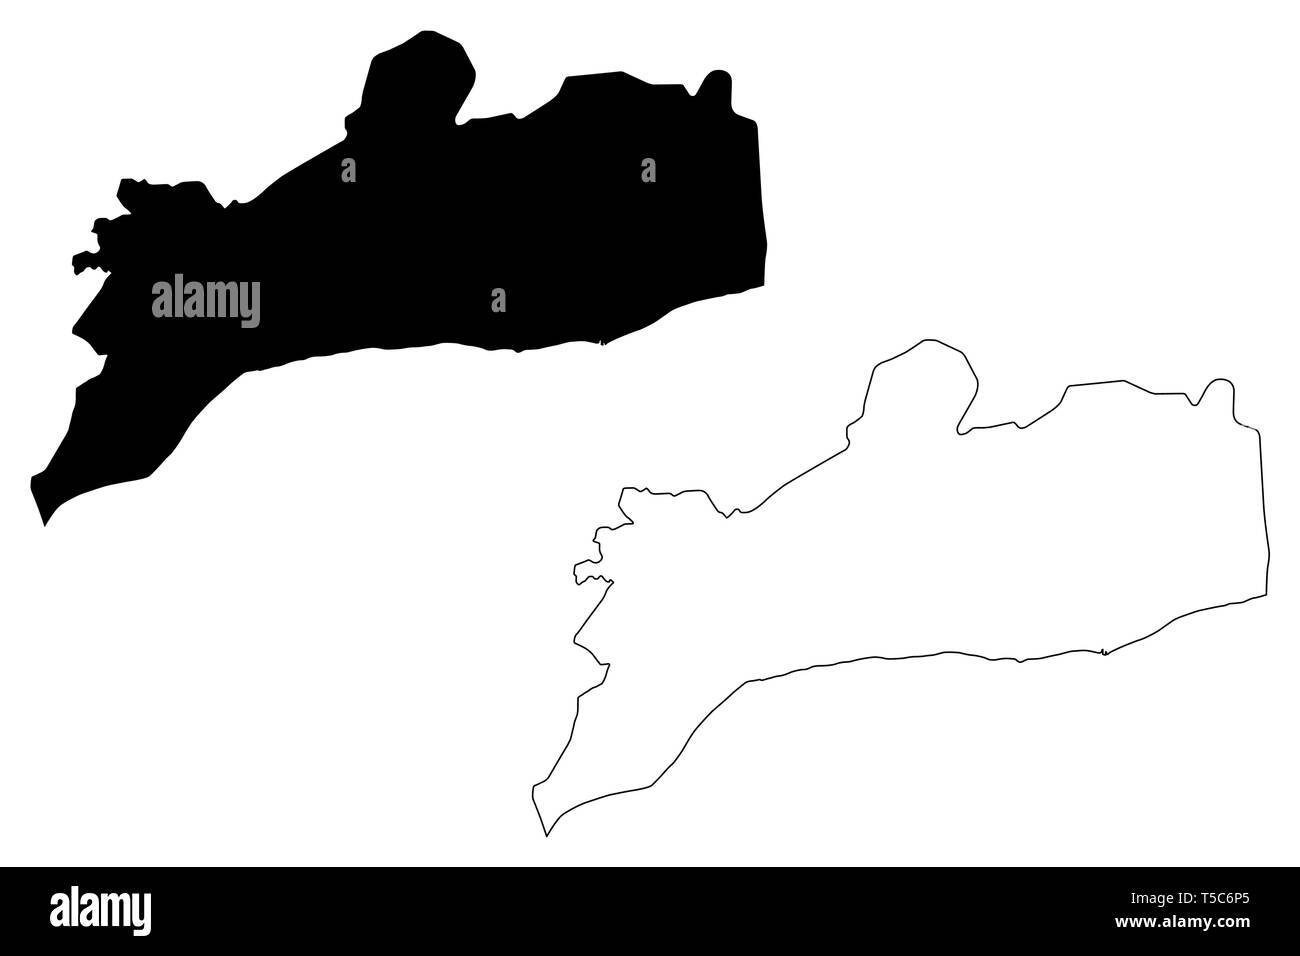 Abyan Governorate (Governorates of Yemen, Republic of Yemen) map vector illustration, scribble sketch Abyan map - Stock Vector